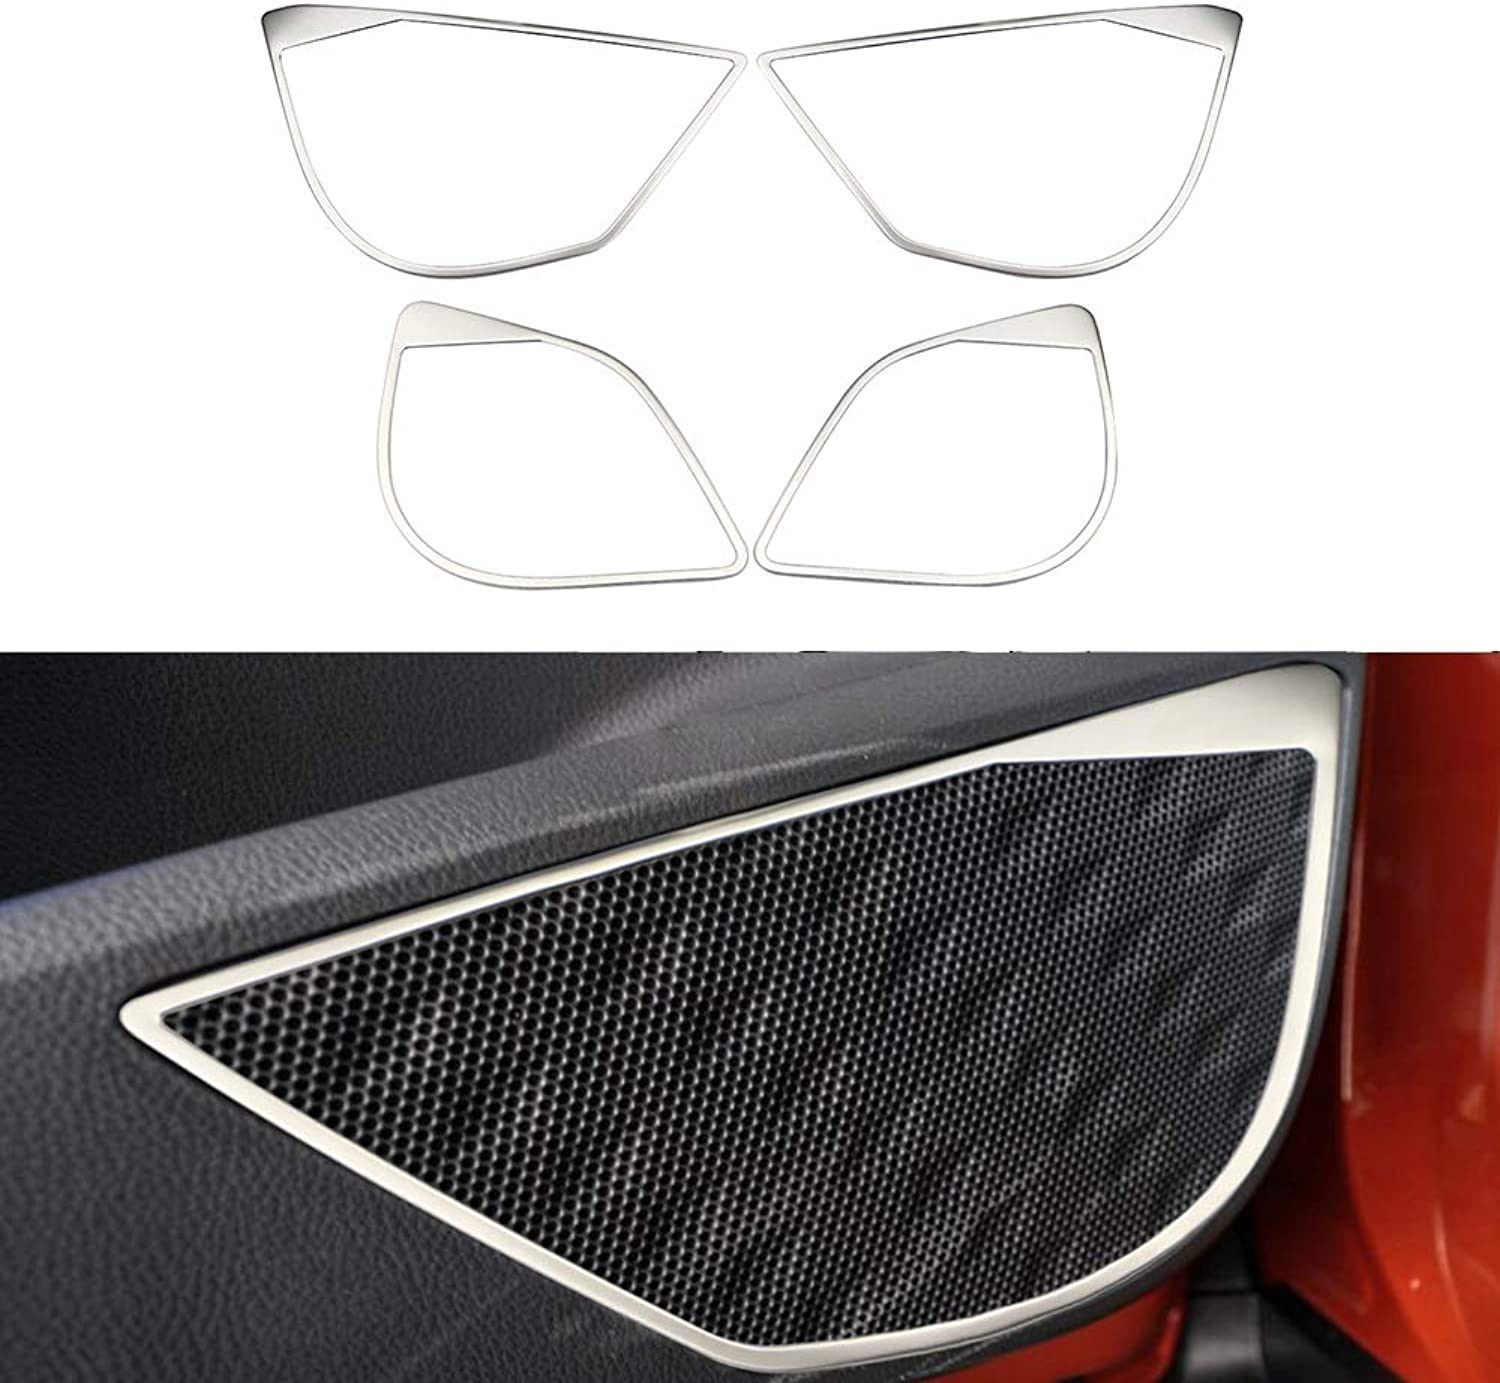 Auto Stainless Steel Car Interior Door Stereo Speaker Ring Doors Audio Stickers for Toyota CHR CHR 20162018 Accessories